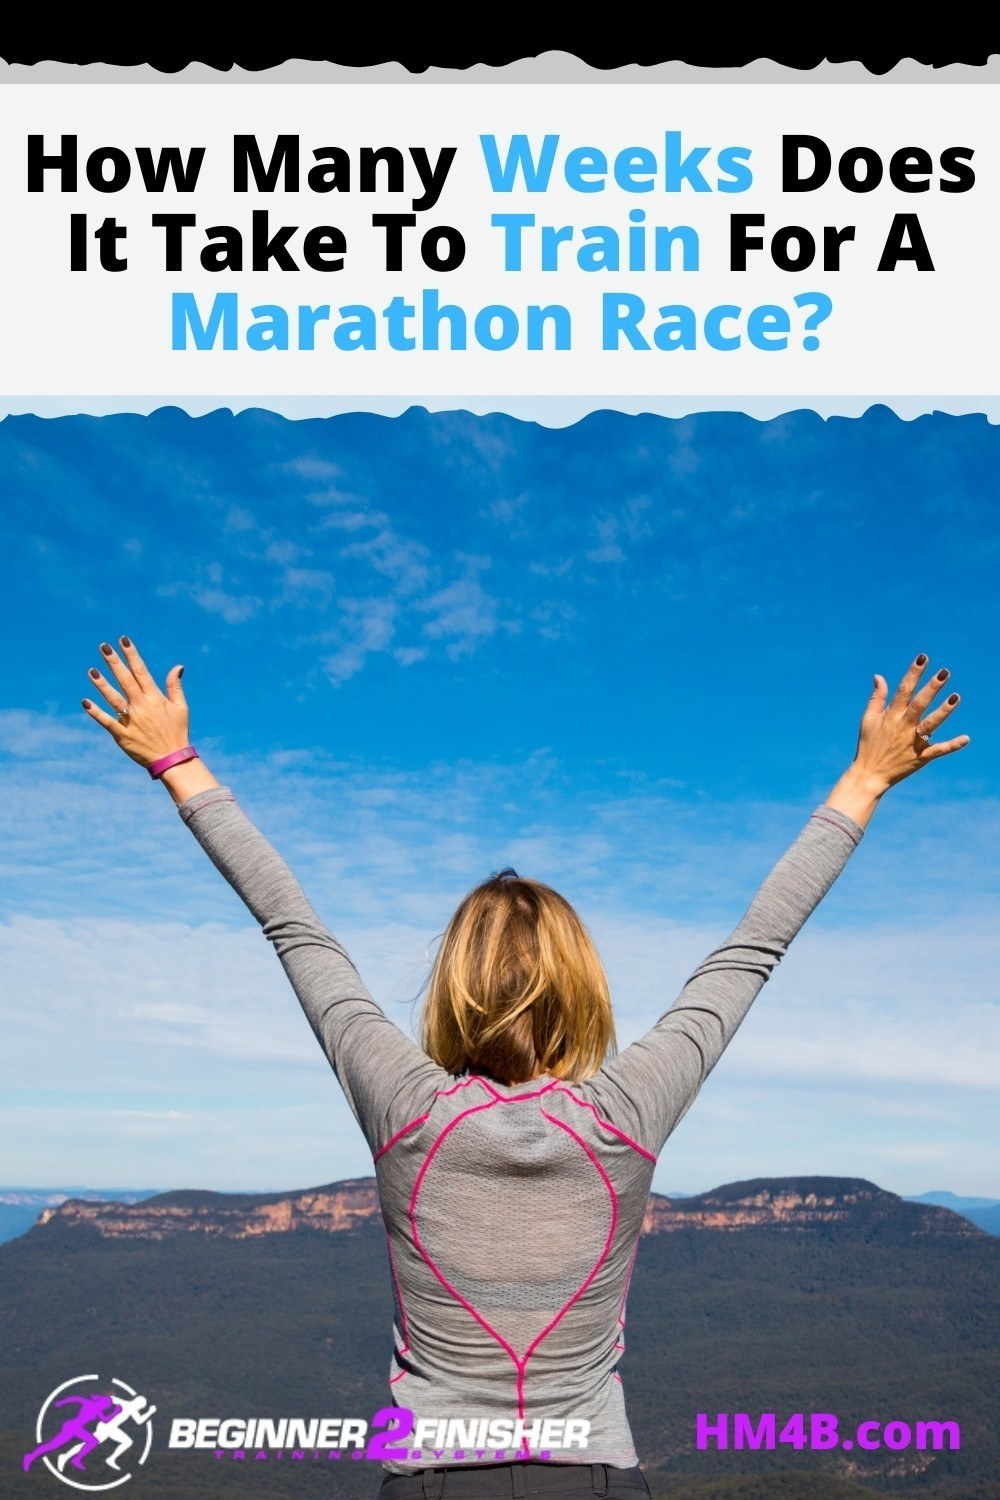 How Many Weeks Does It Take To Train For A Marathon Race